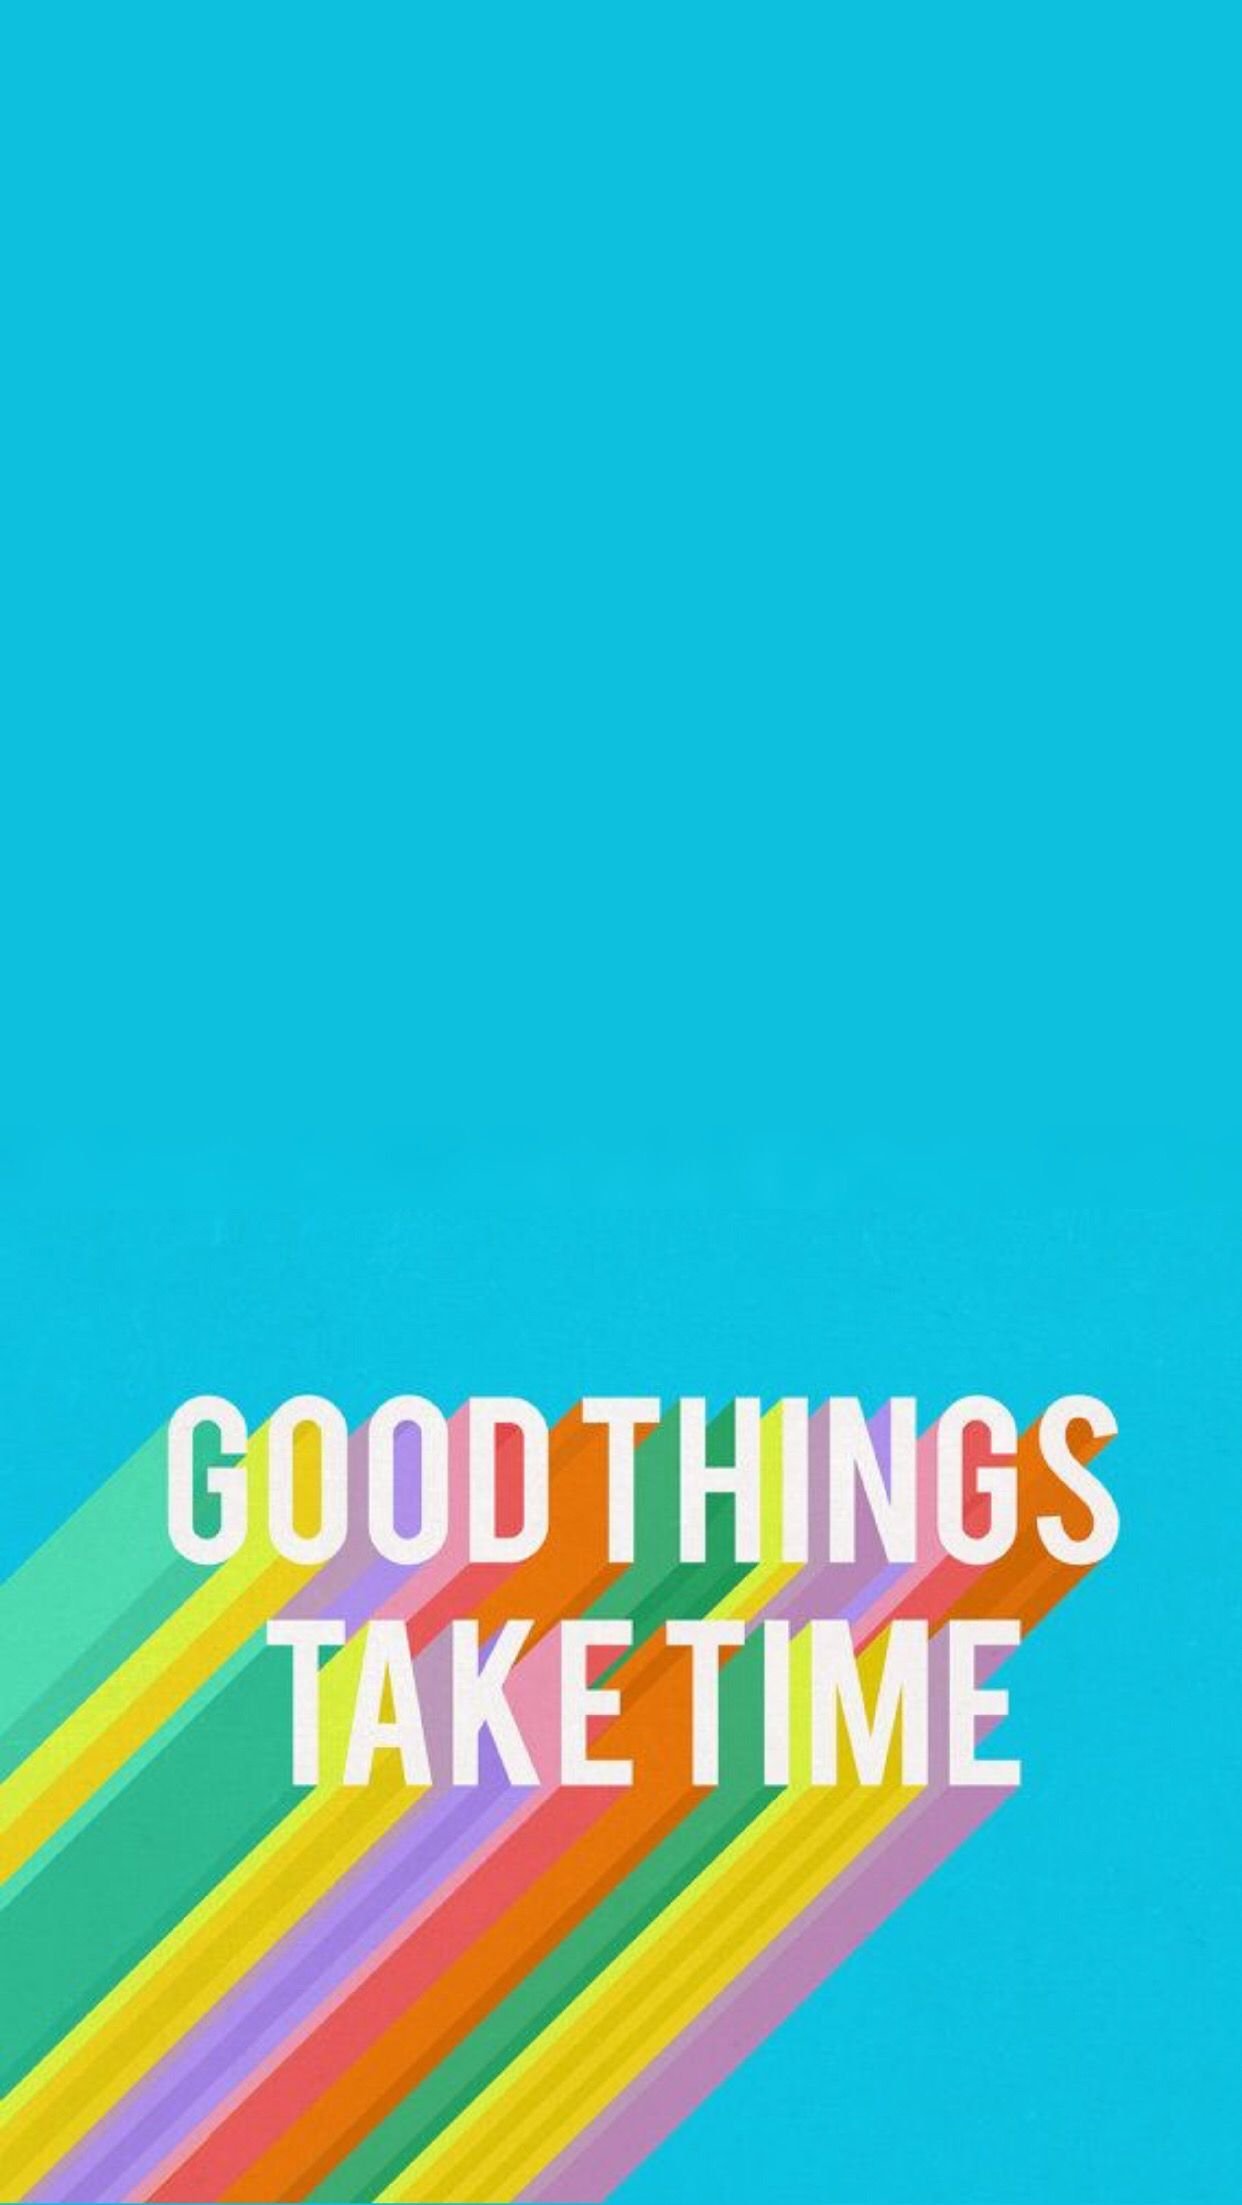 Iphone Wallpaper Good Things Take Time Blue Rainbow Good Things Take Time Tumblr Iphone Wallpaper Wallpaper Quotes Iphone wallpaper change with time of day